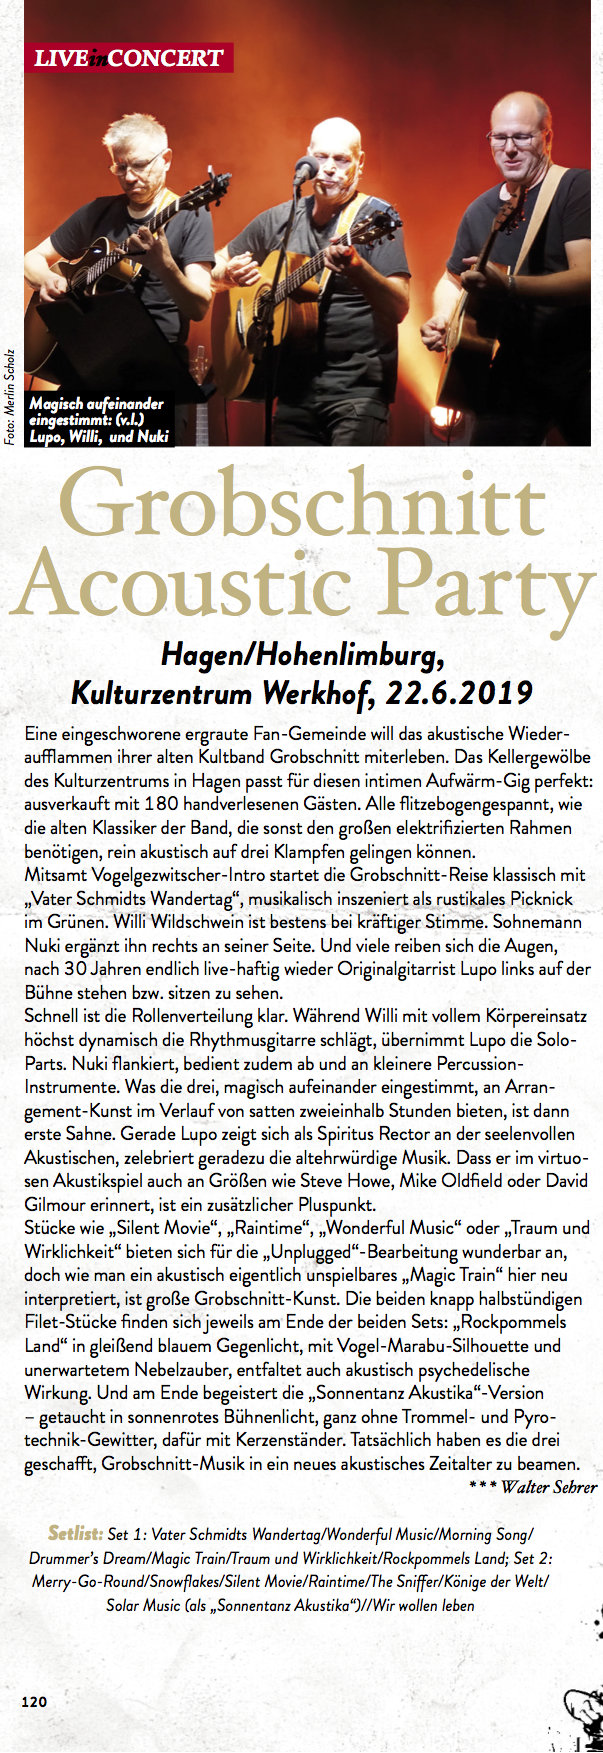 Grobschnitt Acoustic Party eclipsed 09 19 half